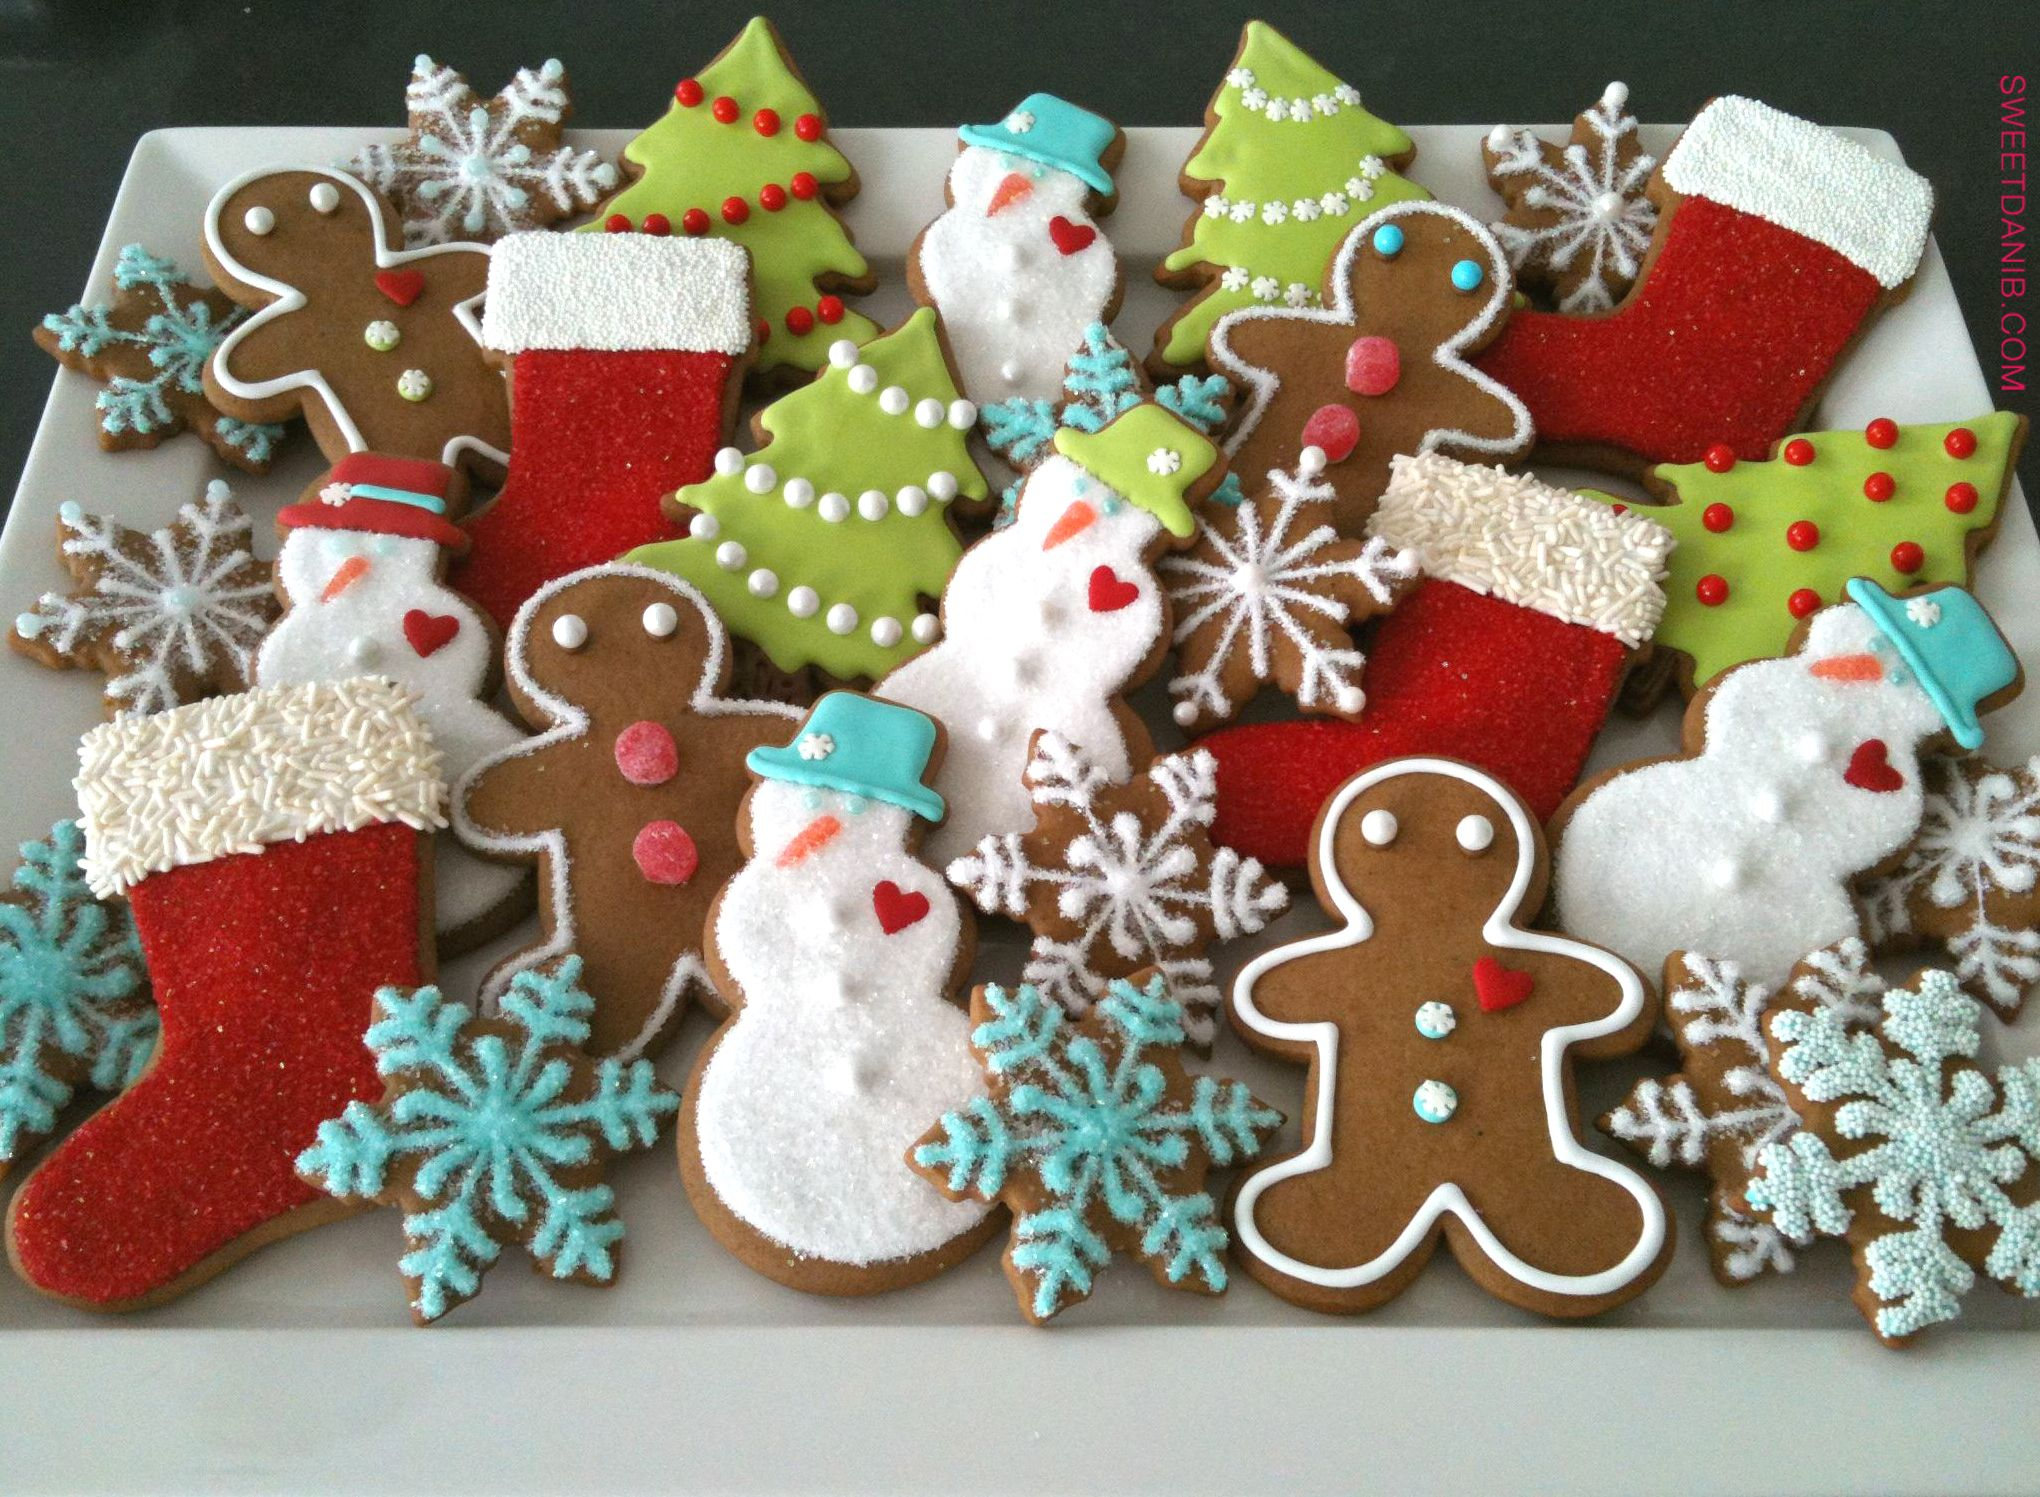 Holiday Cookie Platter As Seen On The Cover Of Good Housekeeping